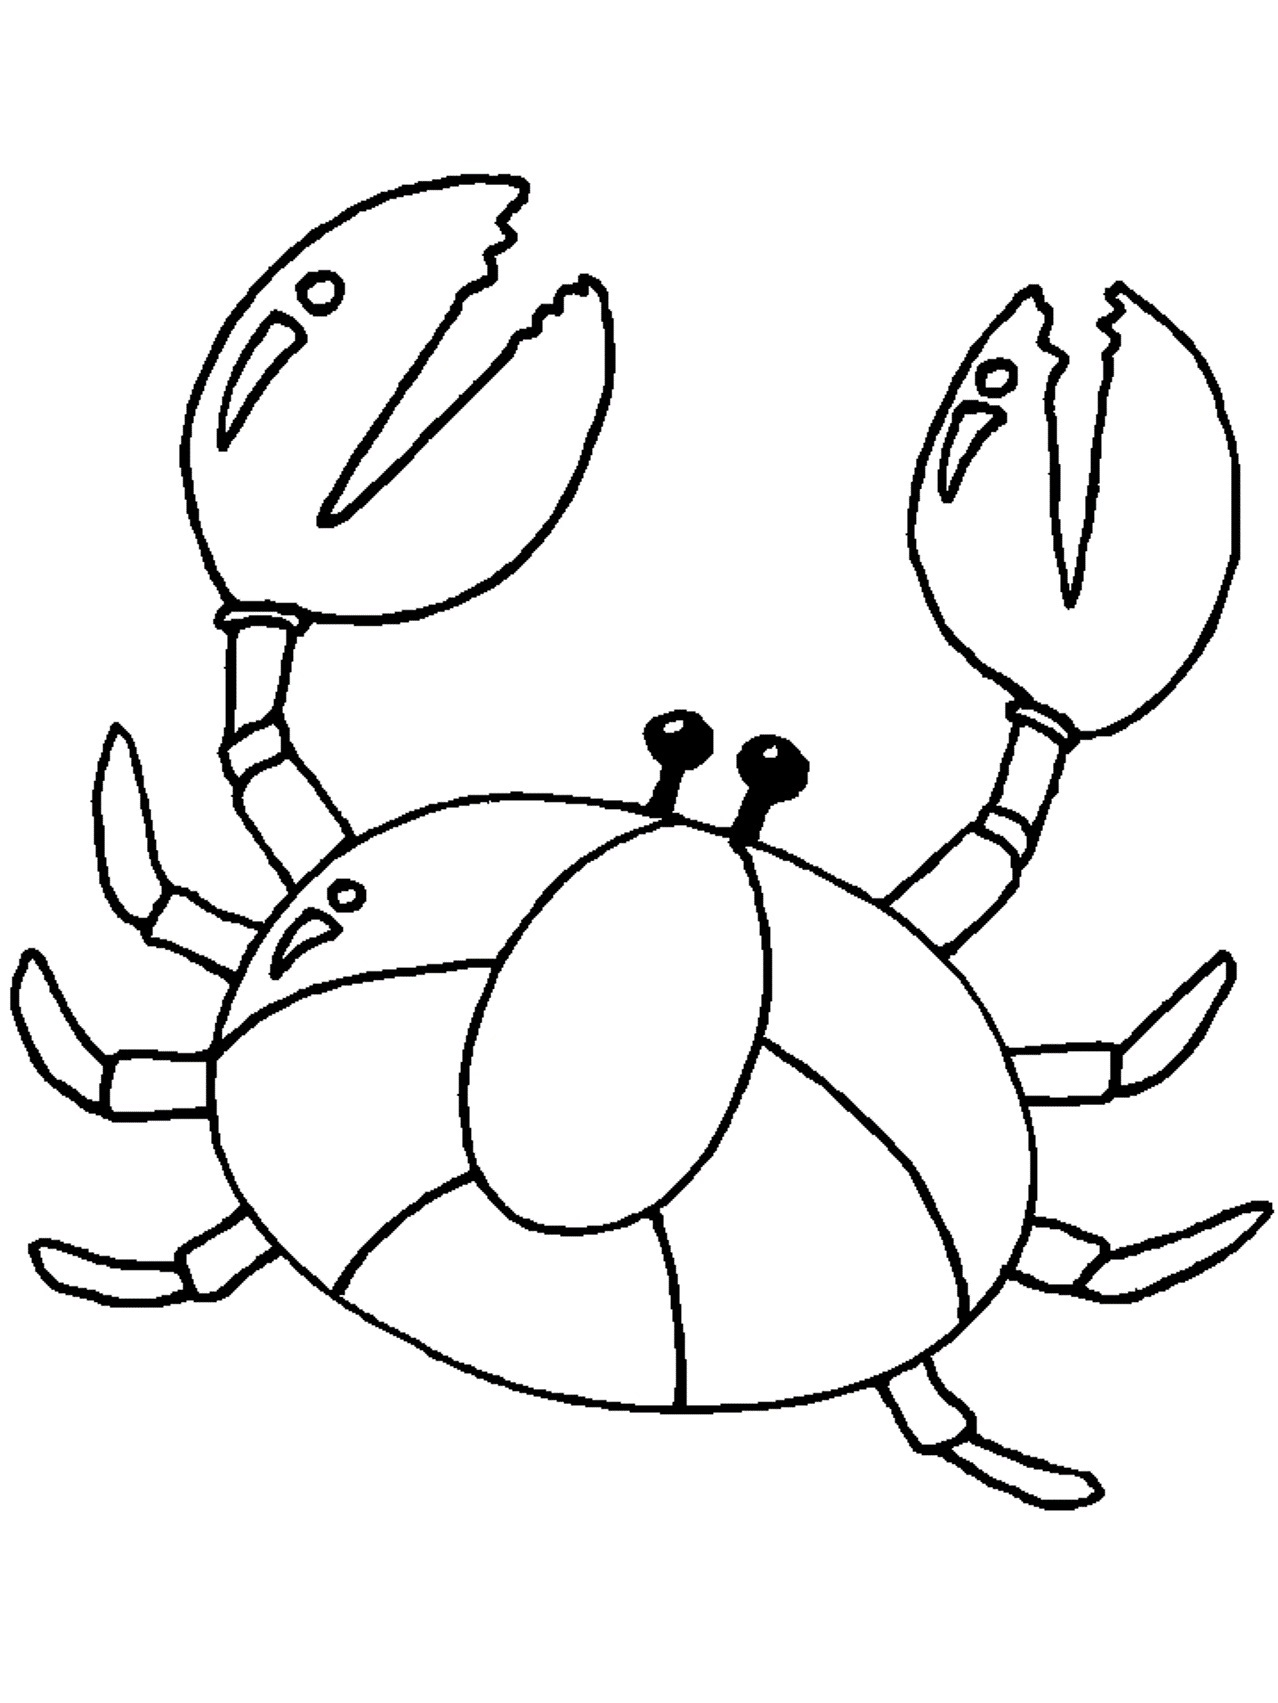 Printable Crab Coloring Pages | Coloring Me